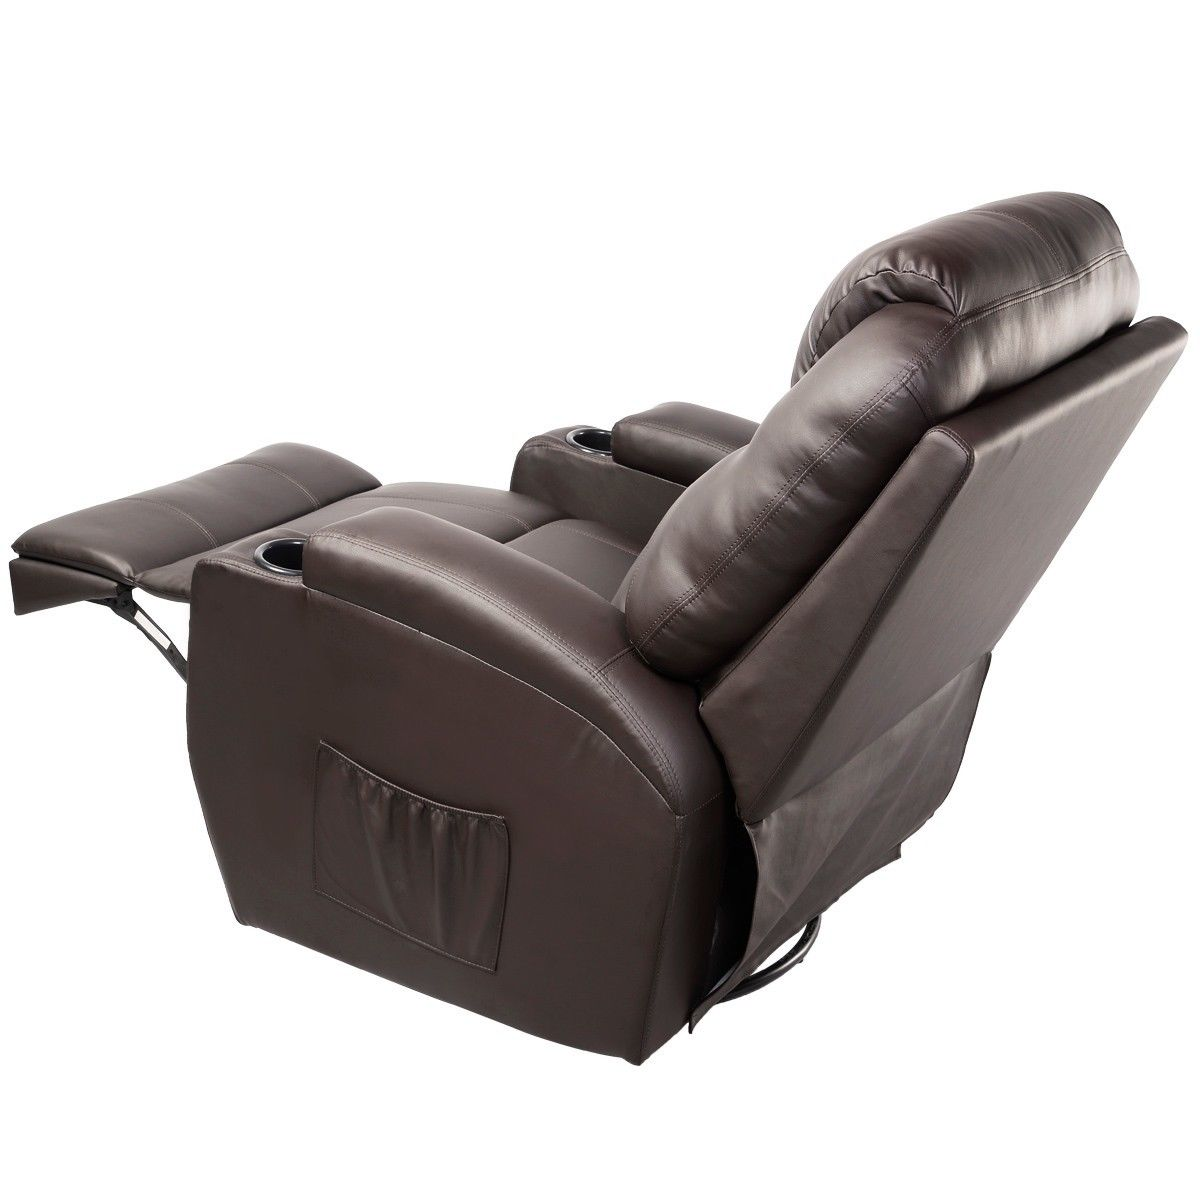 Giantex Ergonomic Massage Sofa Chair Modern Lounge Executive Heated Electric  Massage Chairs With Control Sofas EP19630BN In Living Room Sofas From  Furniture ...